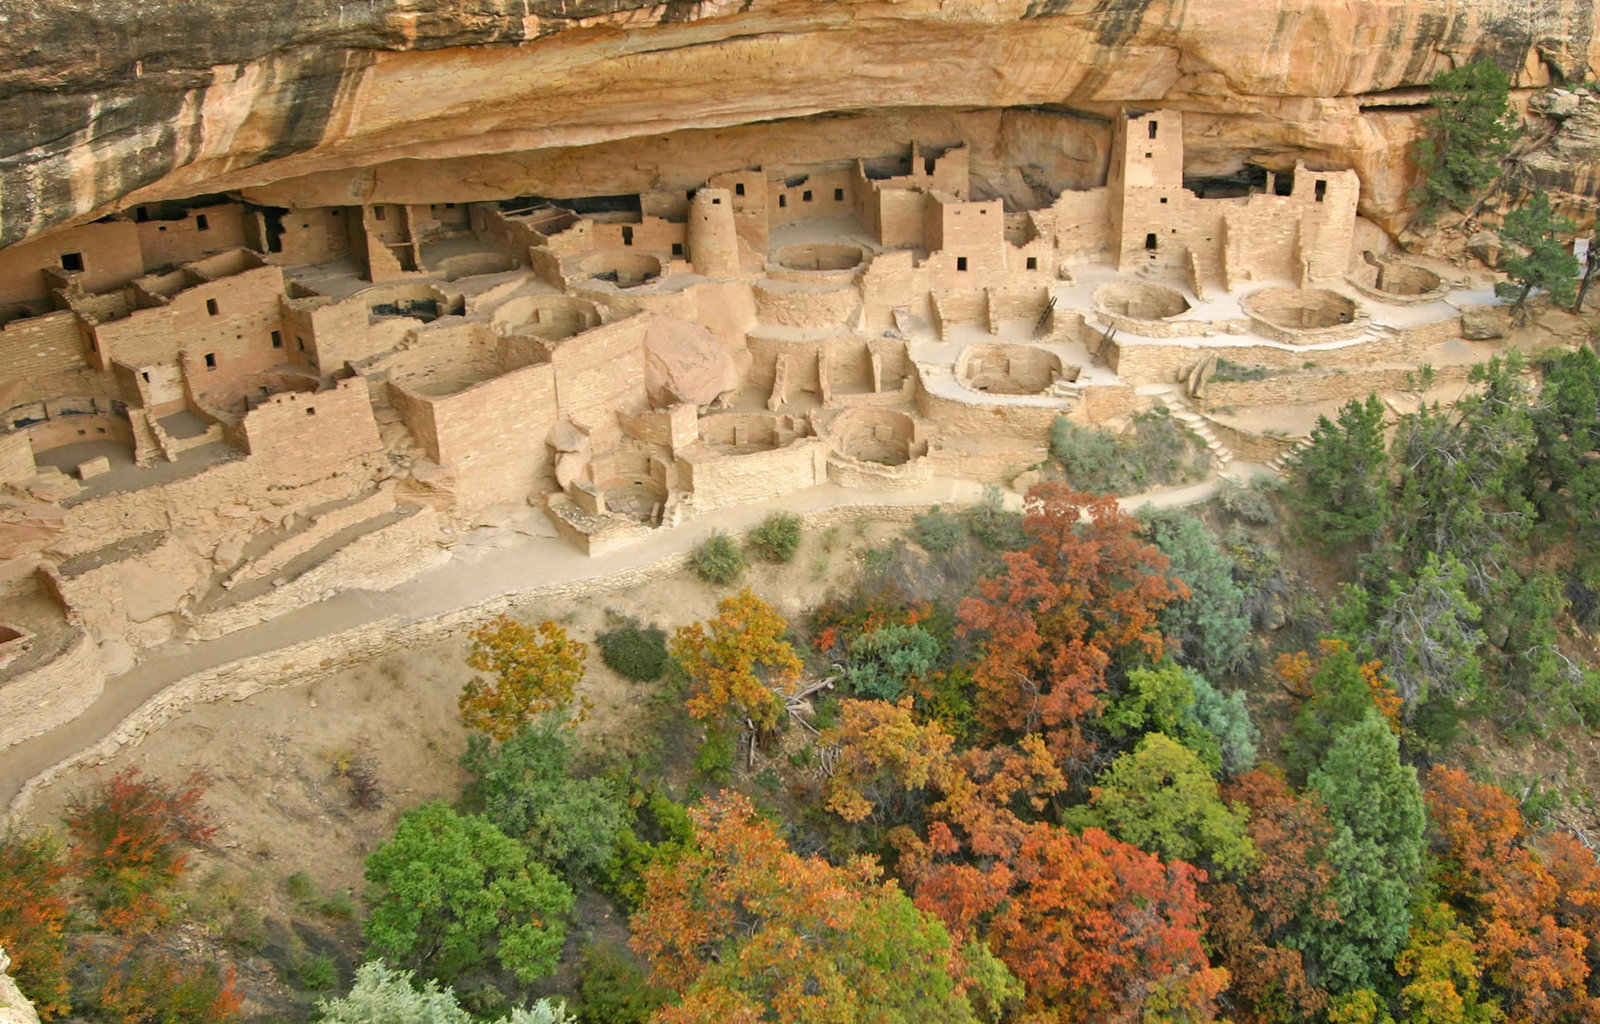 mesa verde national park Get the mesa verde national park weather forecast access hourly, 10 day and 15 day forecasts along with up to the minute reports and videos for mesa verde national park, co 81330 from accuweathercom.